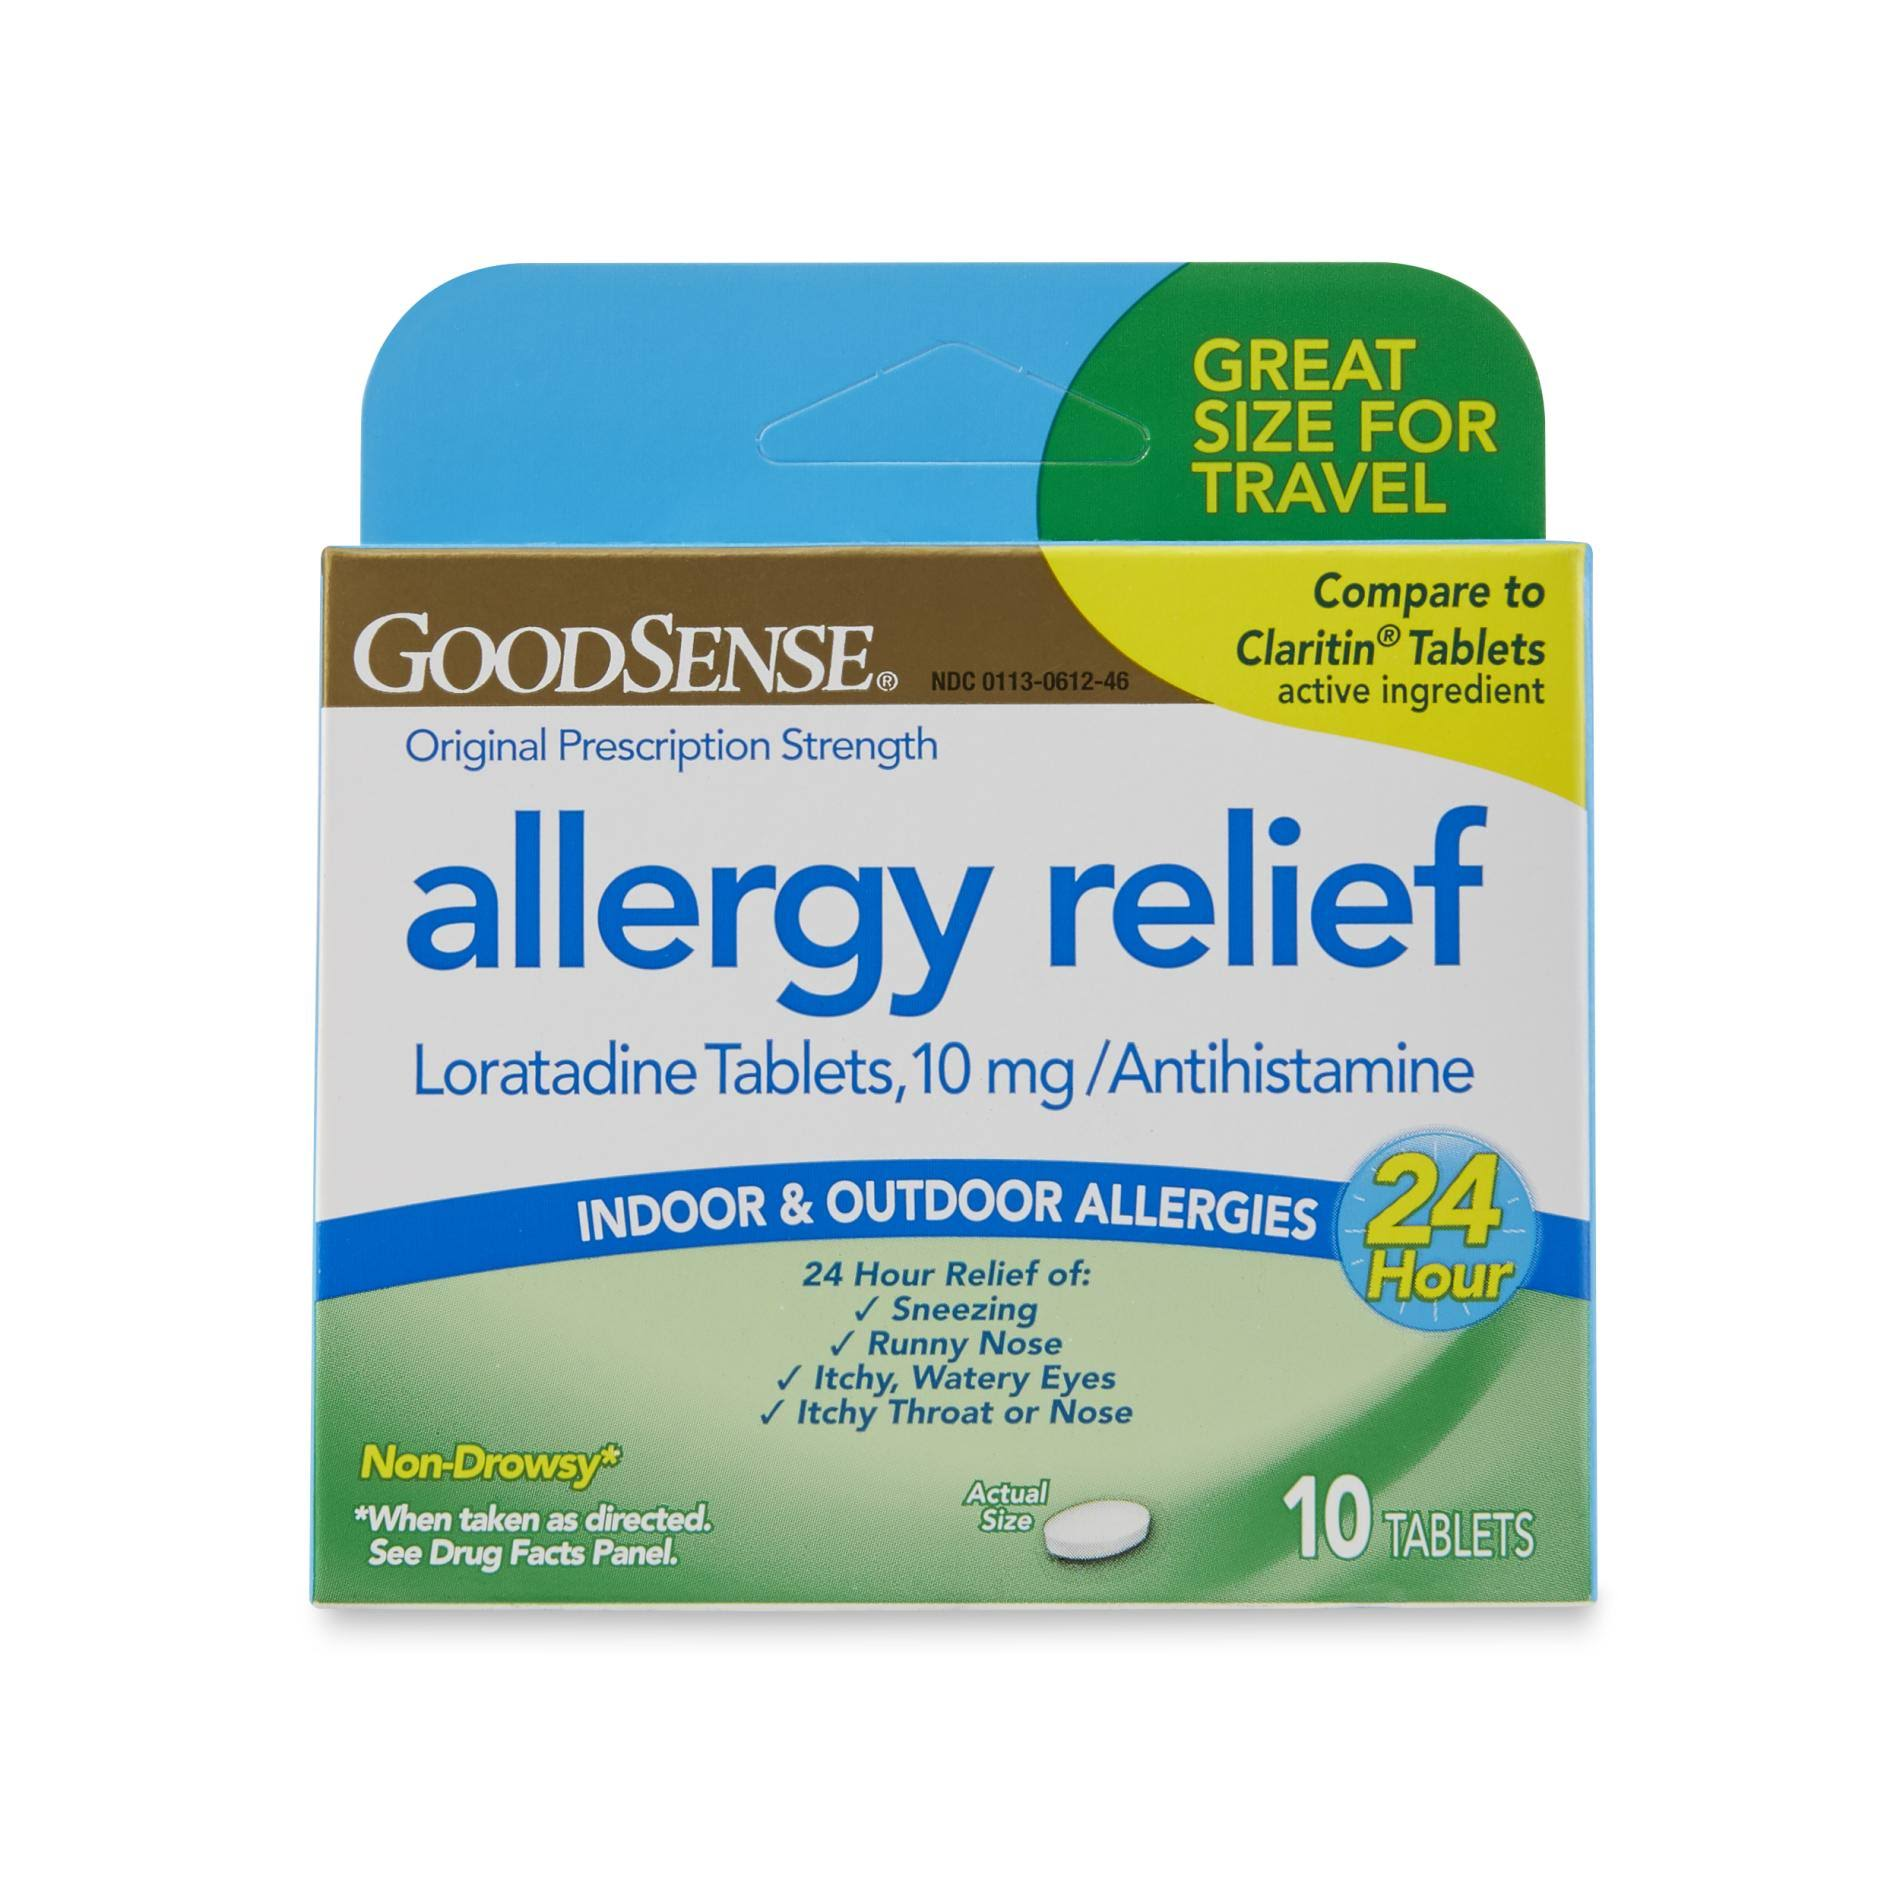 Sears.com GoodSense Prescription Strength Allergy Relief - 10 Tablets